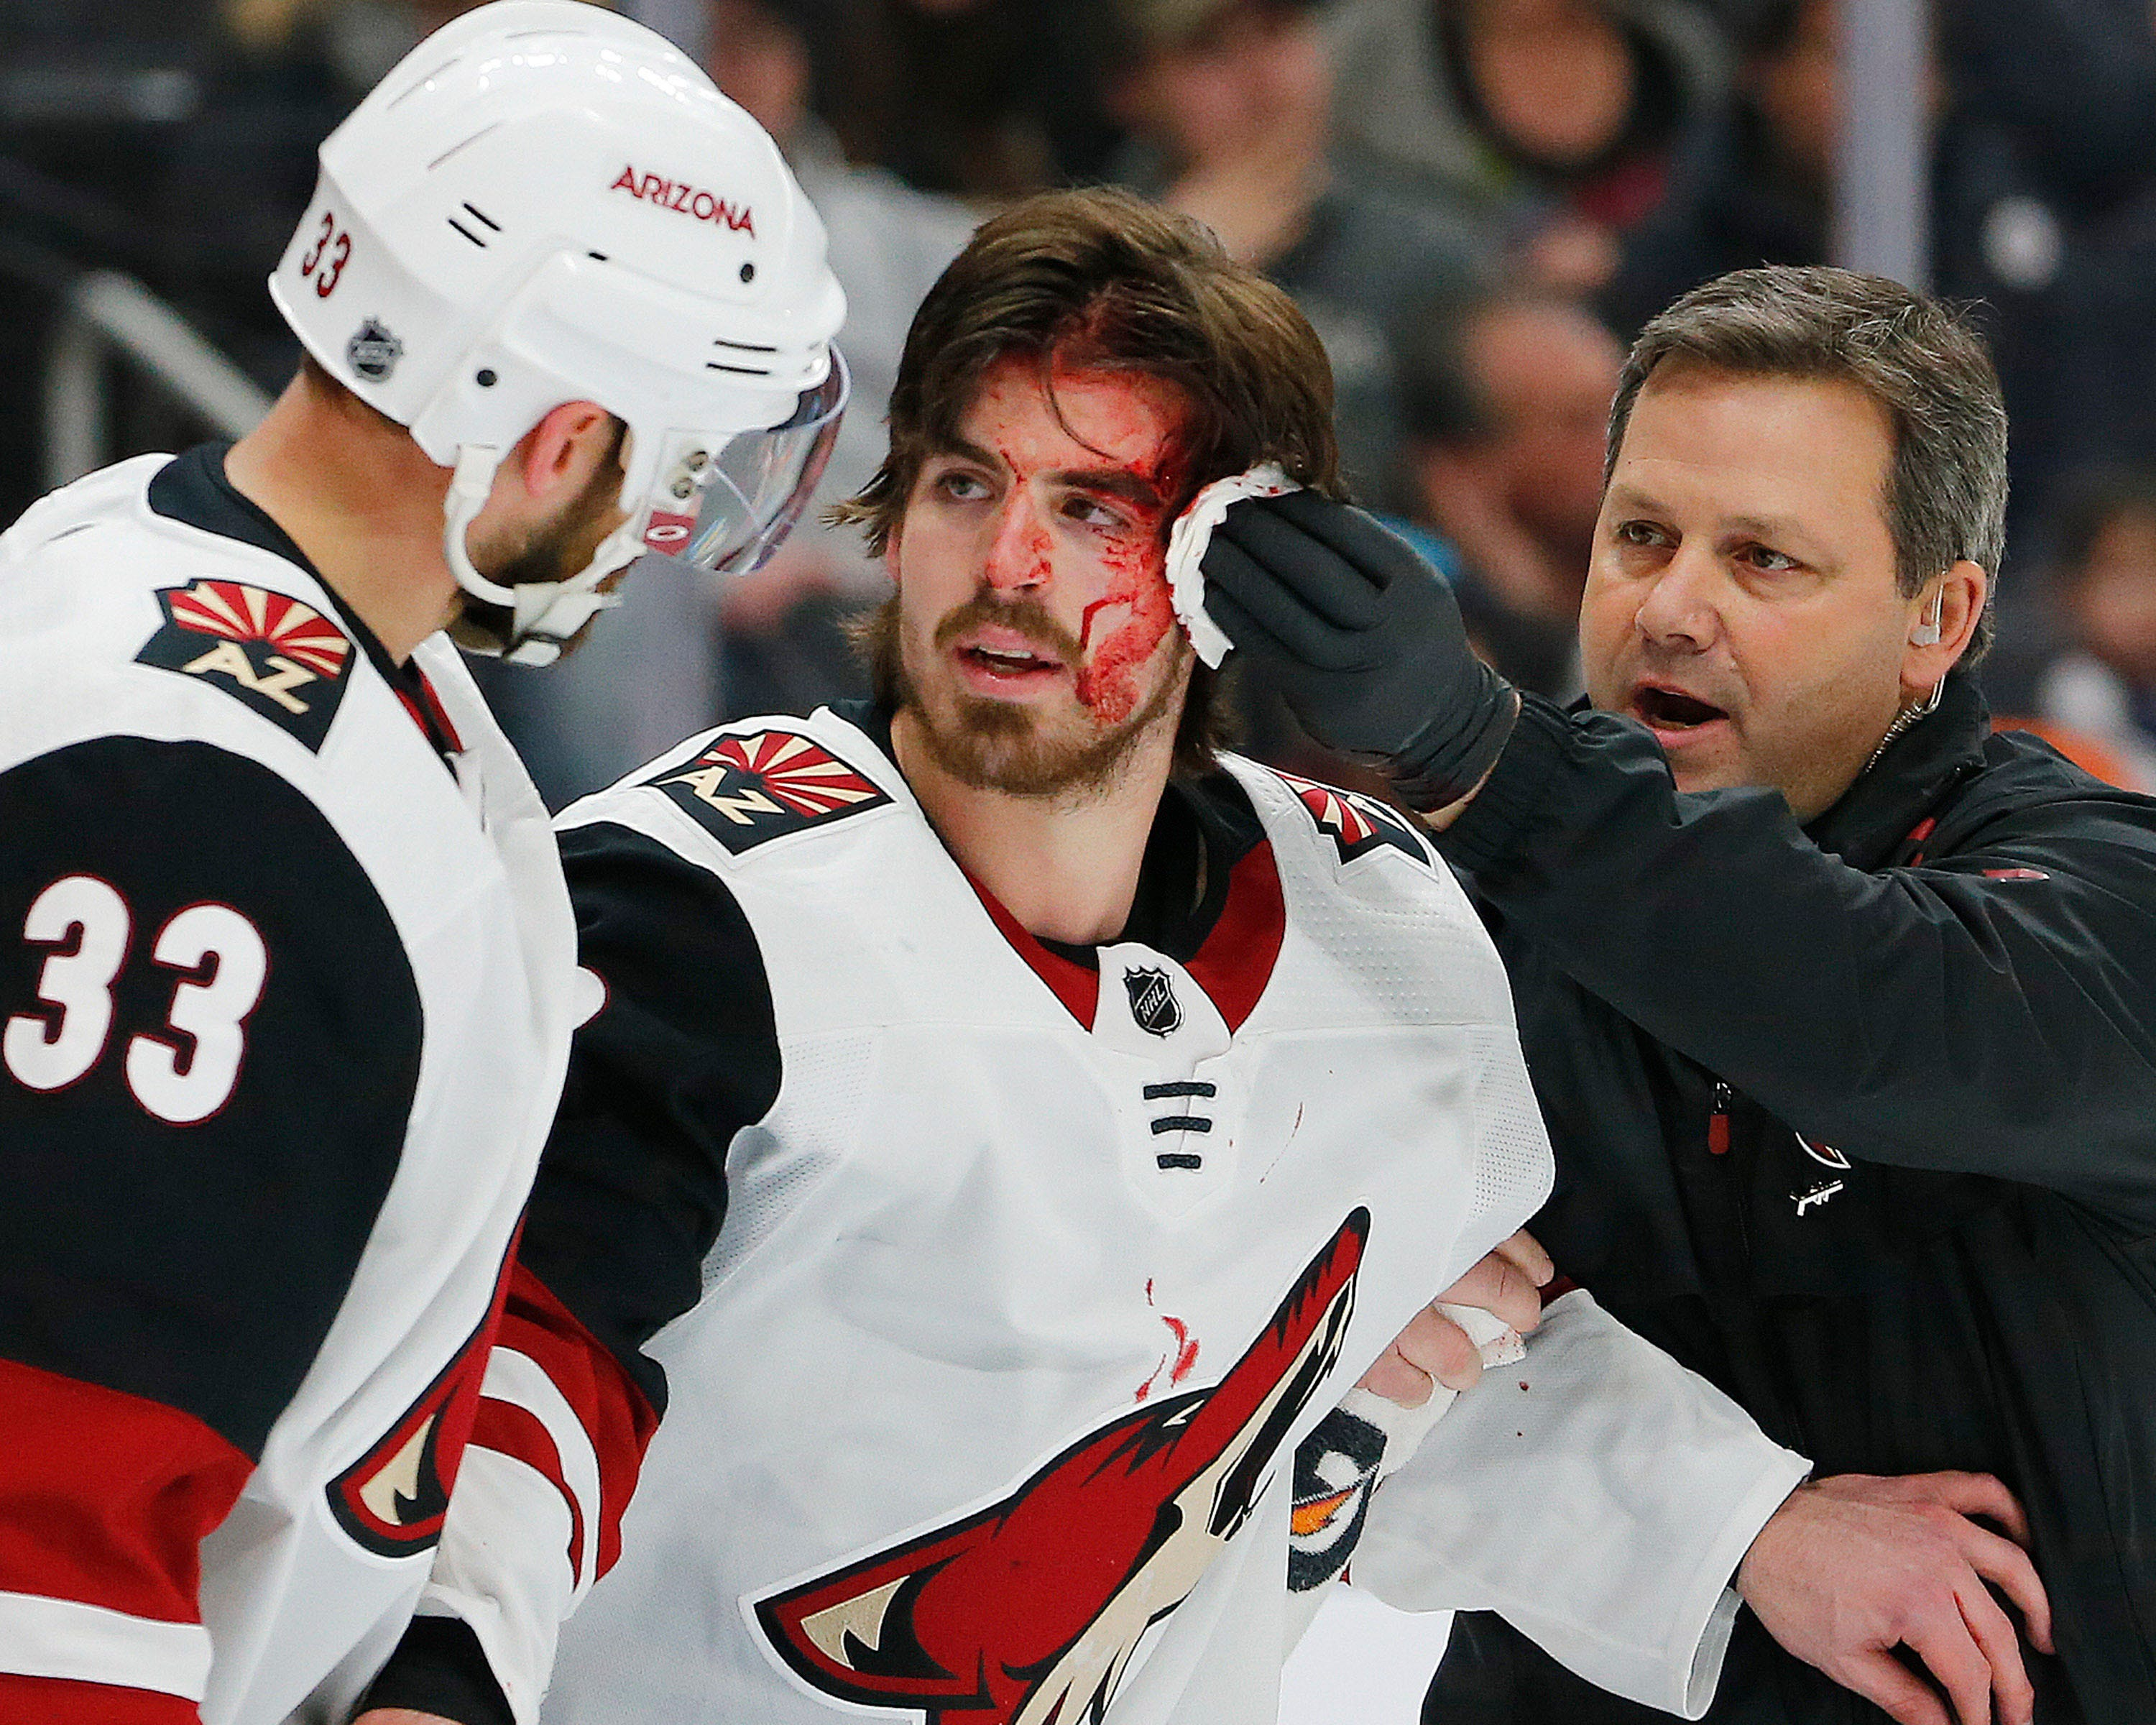 NHL: Arizona Coyotes' Conor Garland Scores Twice, Once Off His Face